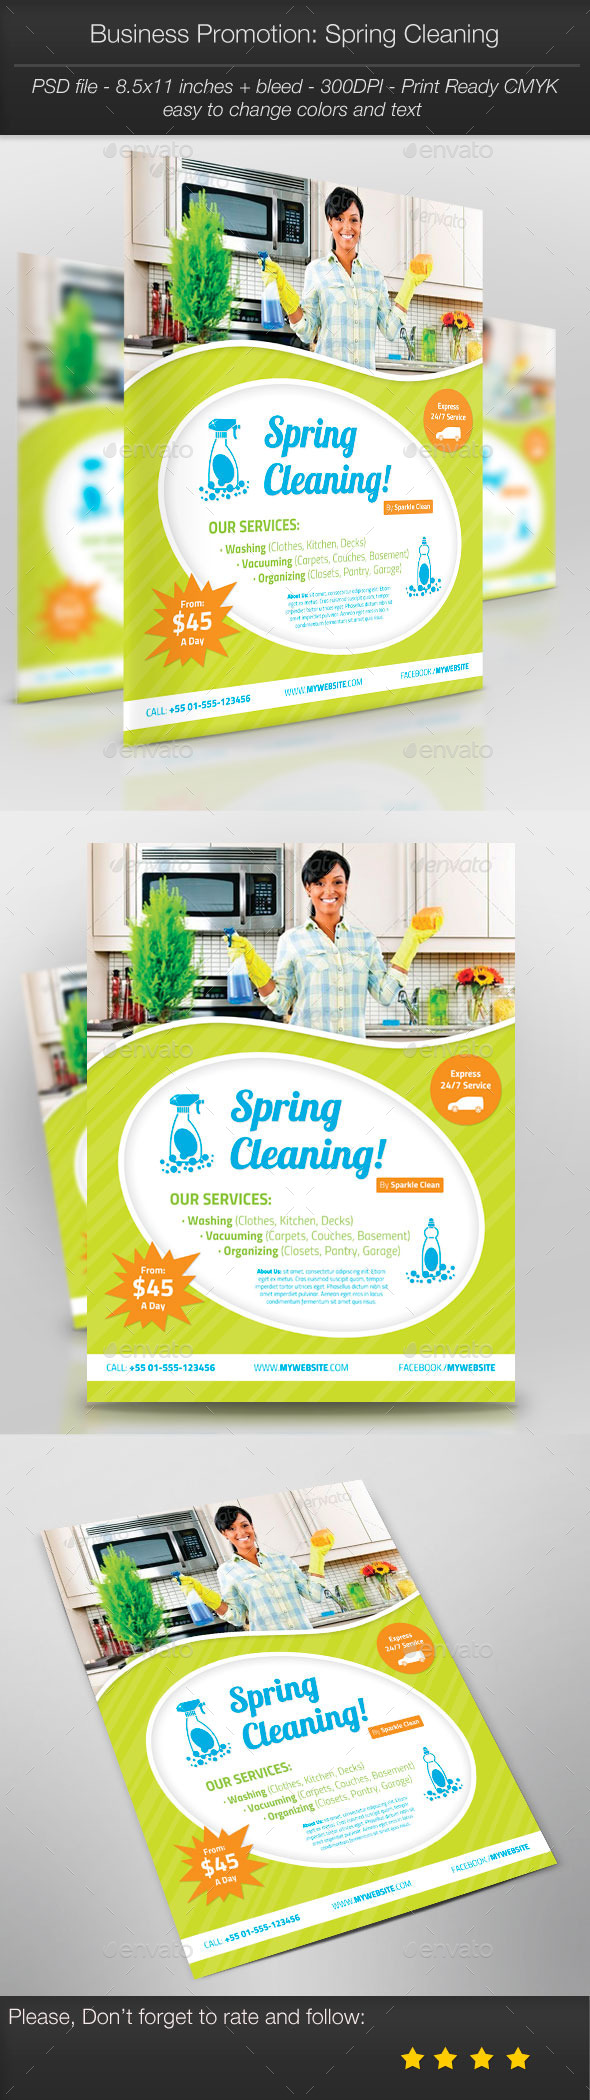 GraphicRiver Business Promotion Spring Cleaning 10843126